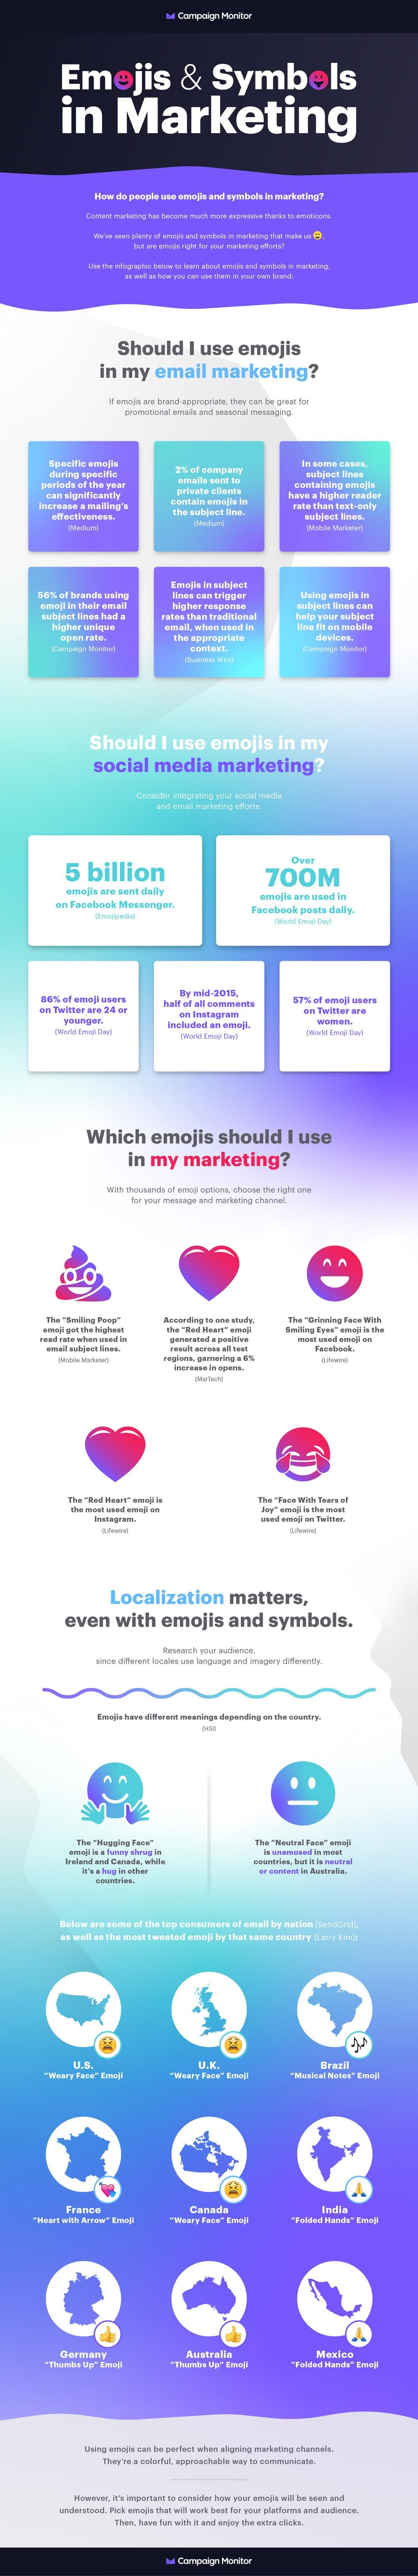 Emojis and Symbols in Marketing #infographic